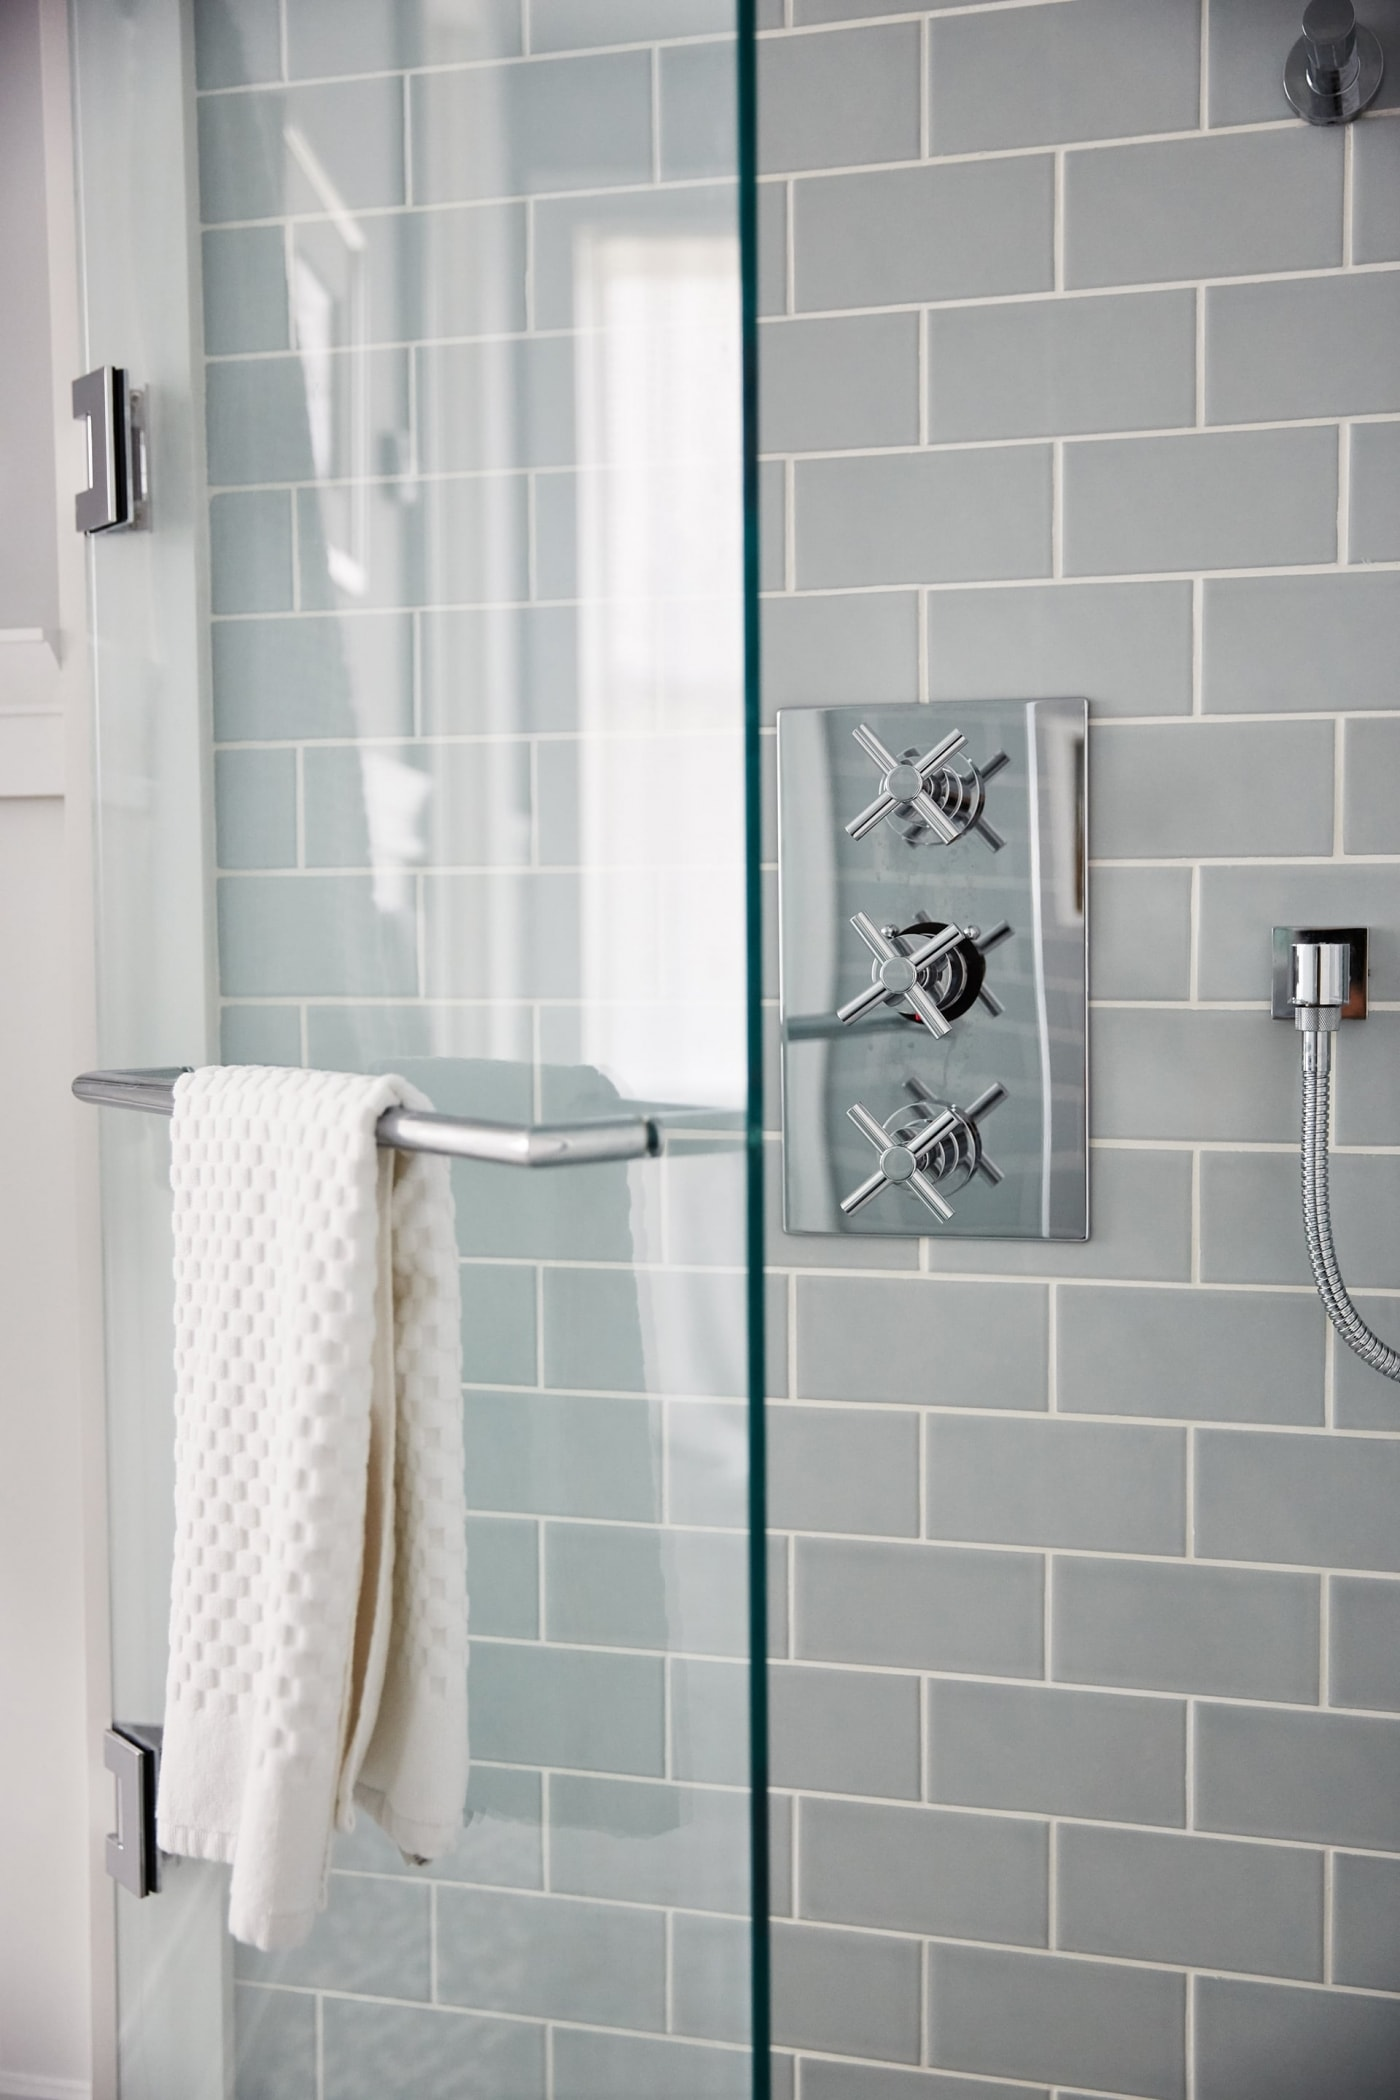 Blue subway tile in luxury shower in Robin's Bathroom - Sarah off the Grid